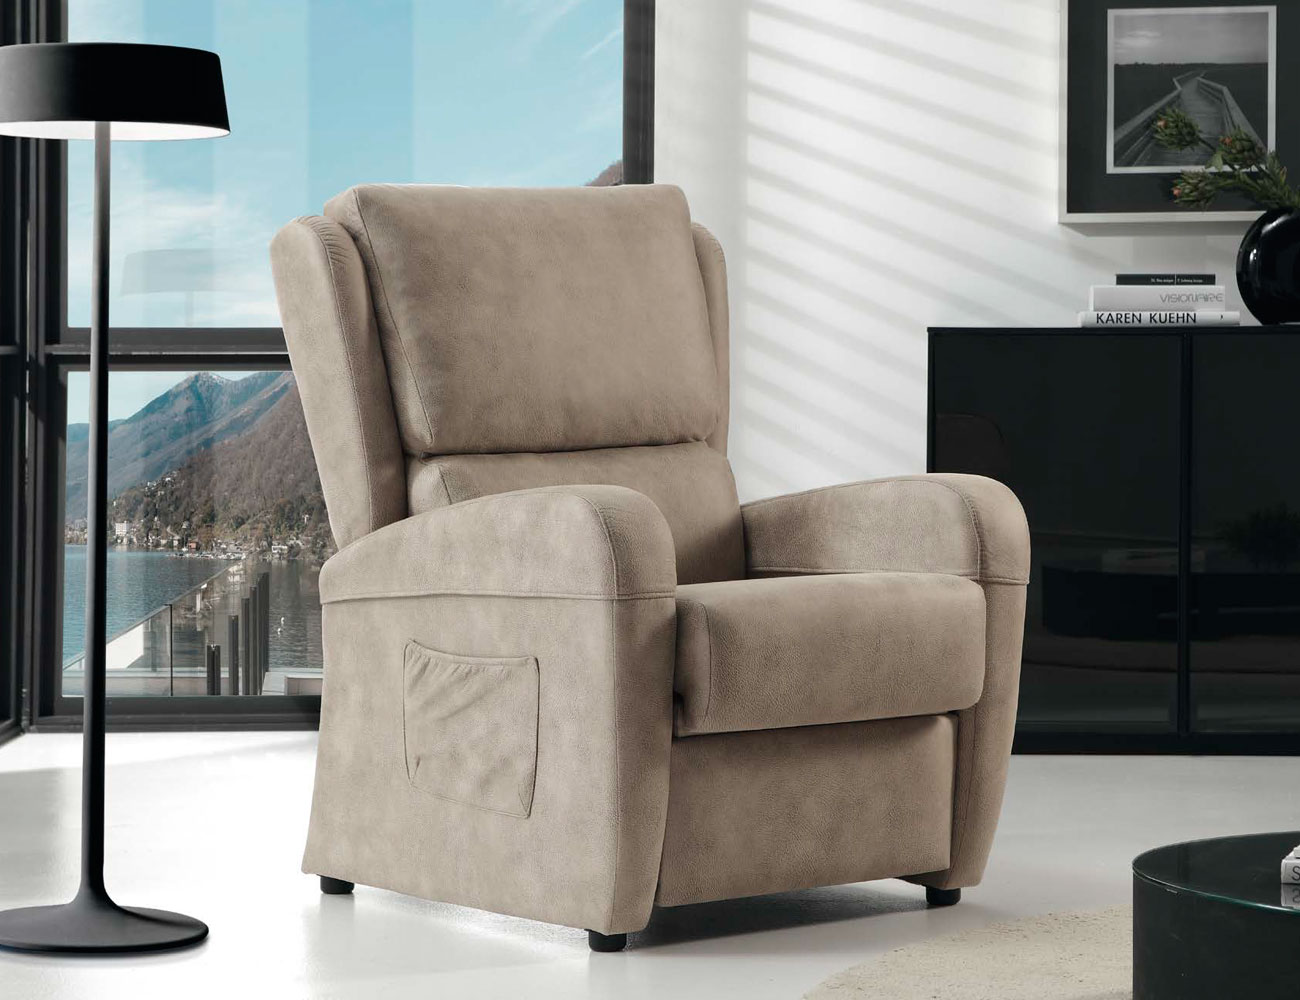 Sillon relax manual jana10